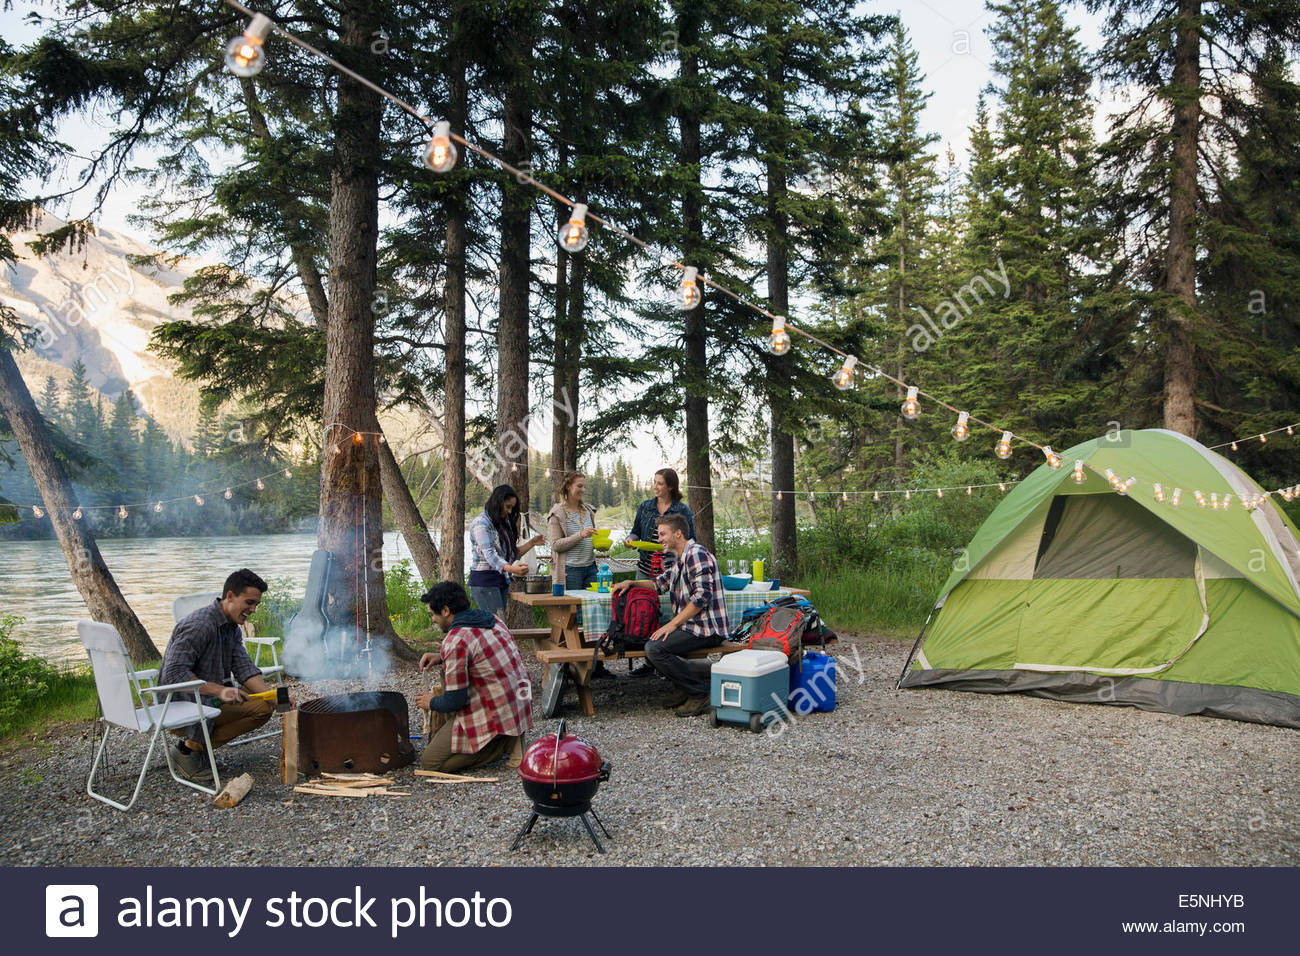 Friends hanging out at lakeside camping Photo Stock